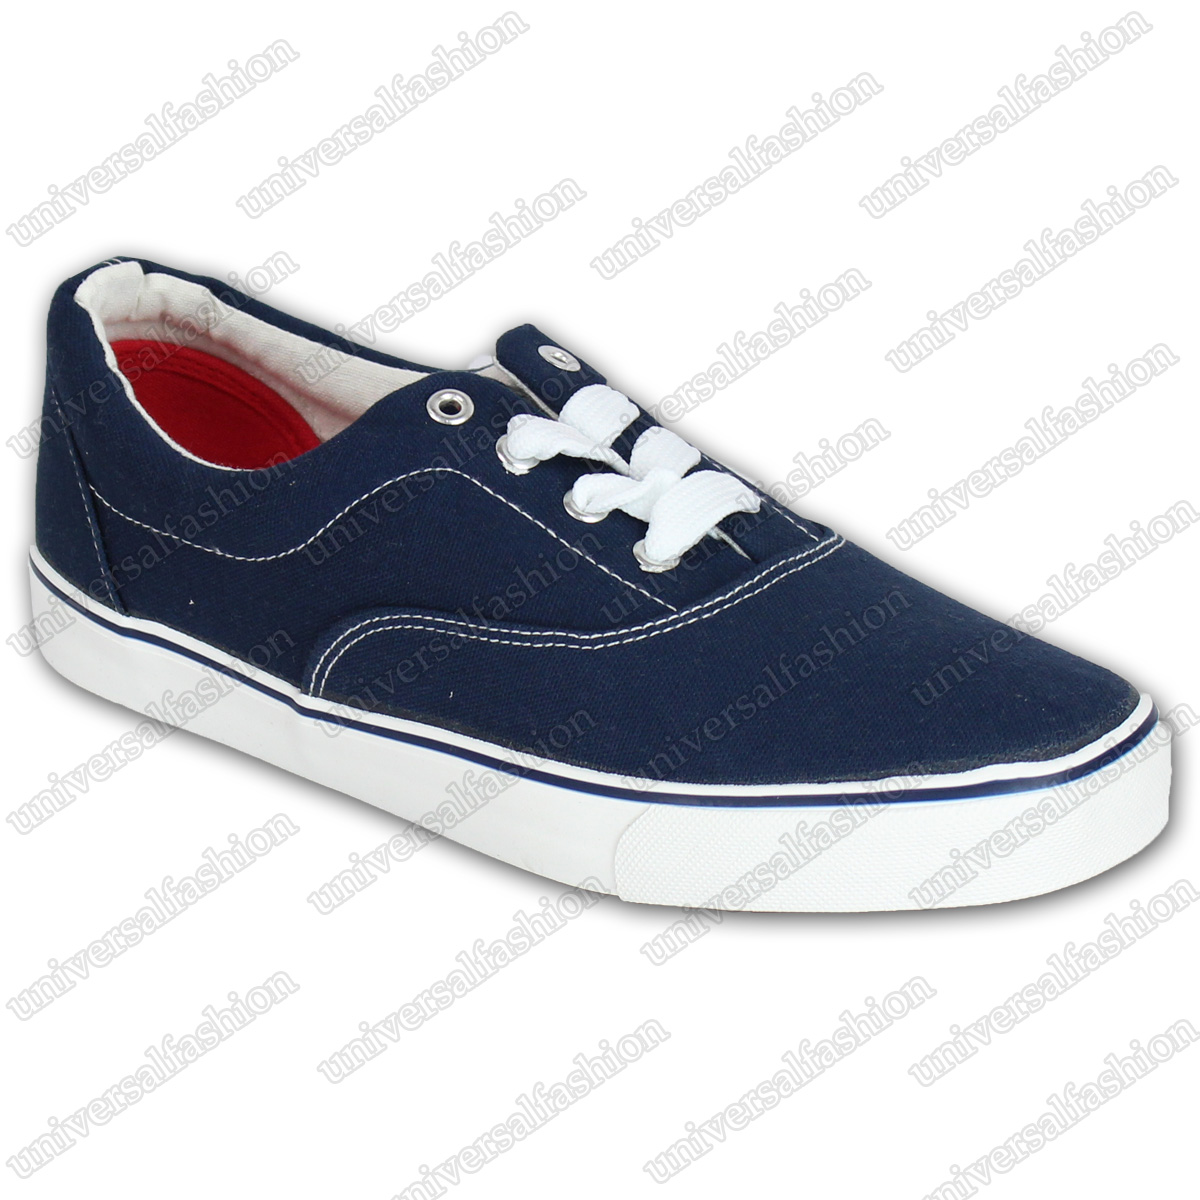 mens pumps crosshatch sneakers trainers shoes lace up